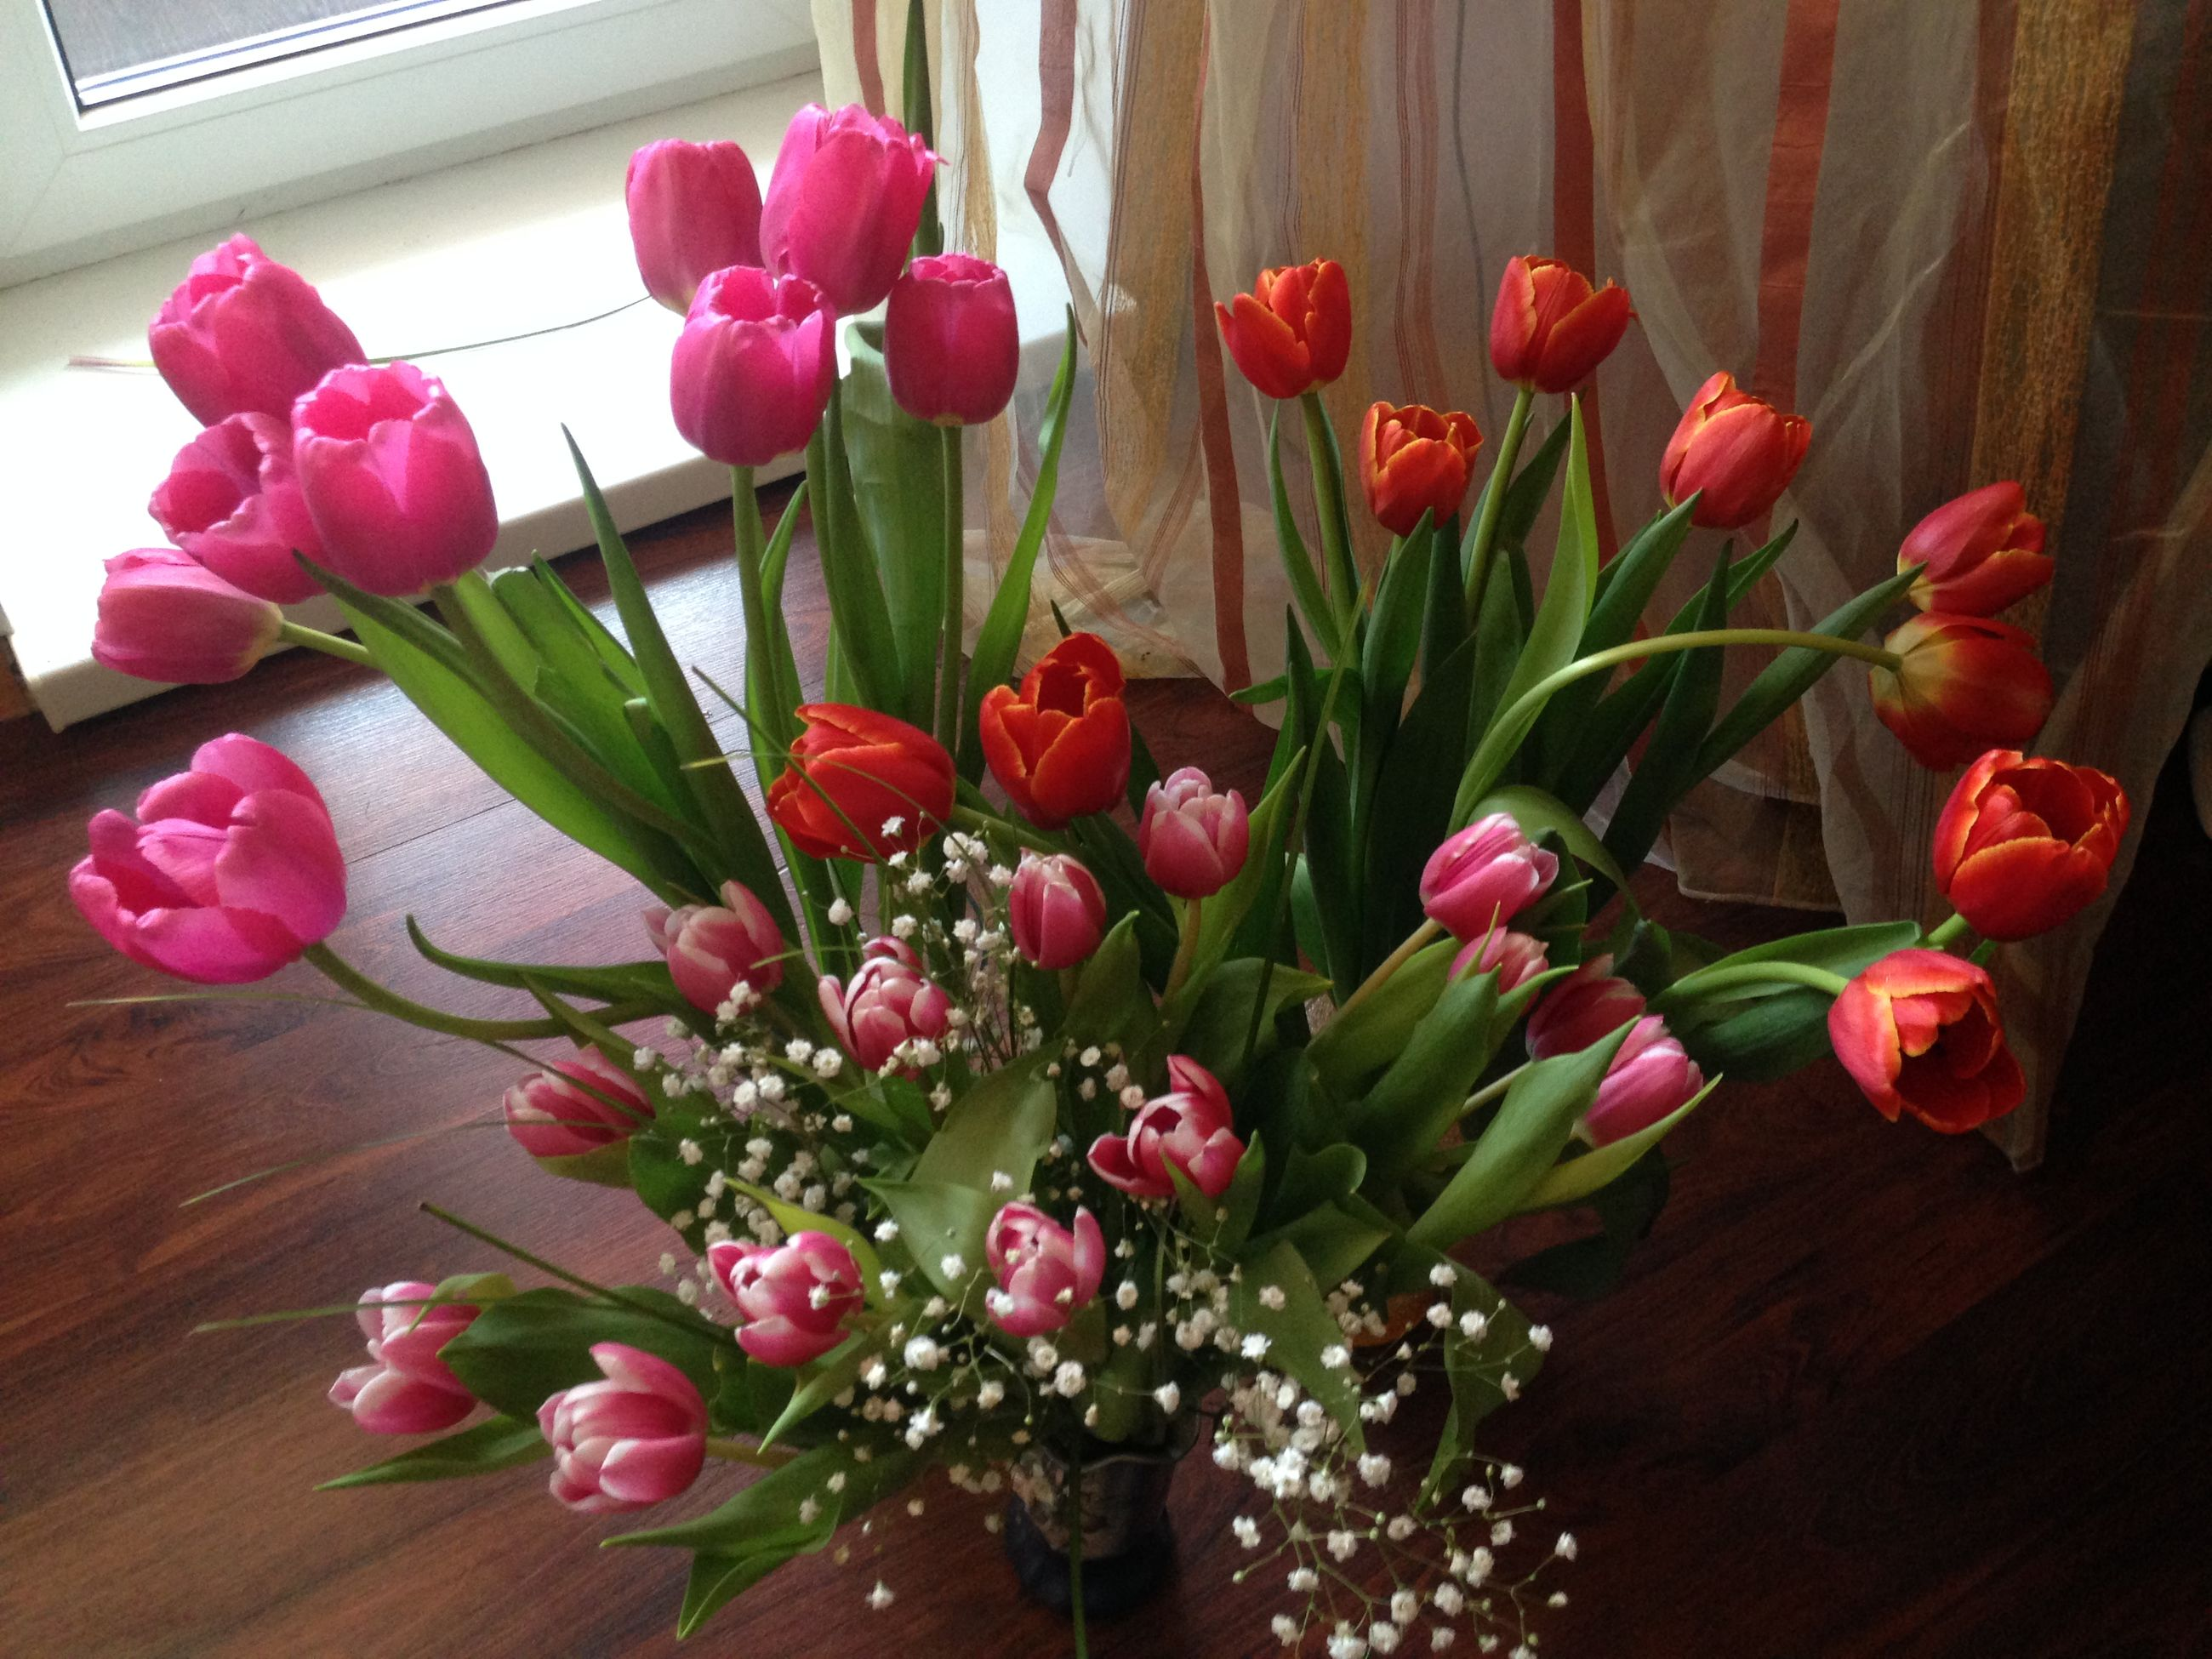 flower, freshness, fragility, indoors, petal, pink color, vase, growth, beauty in nature, flower head, red, nature, tulip, plant, decoration, stem, home interior, table, leaf, bunch of flowers